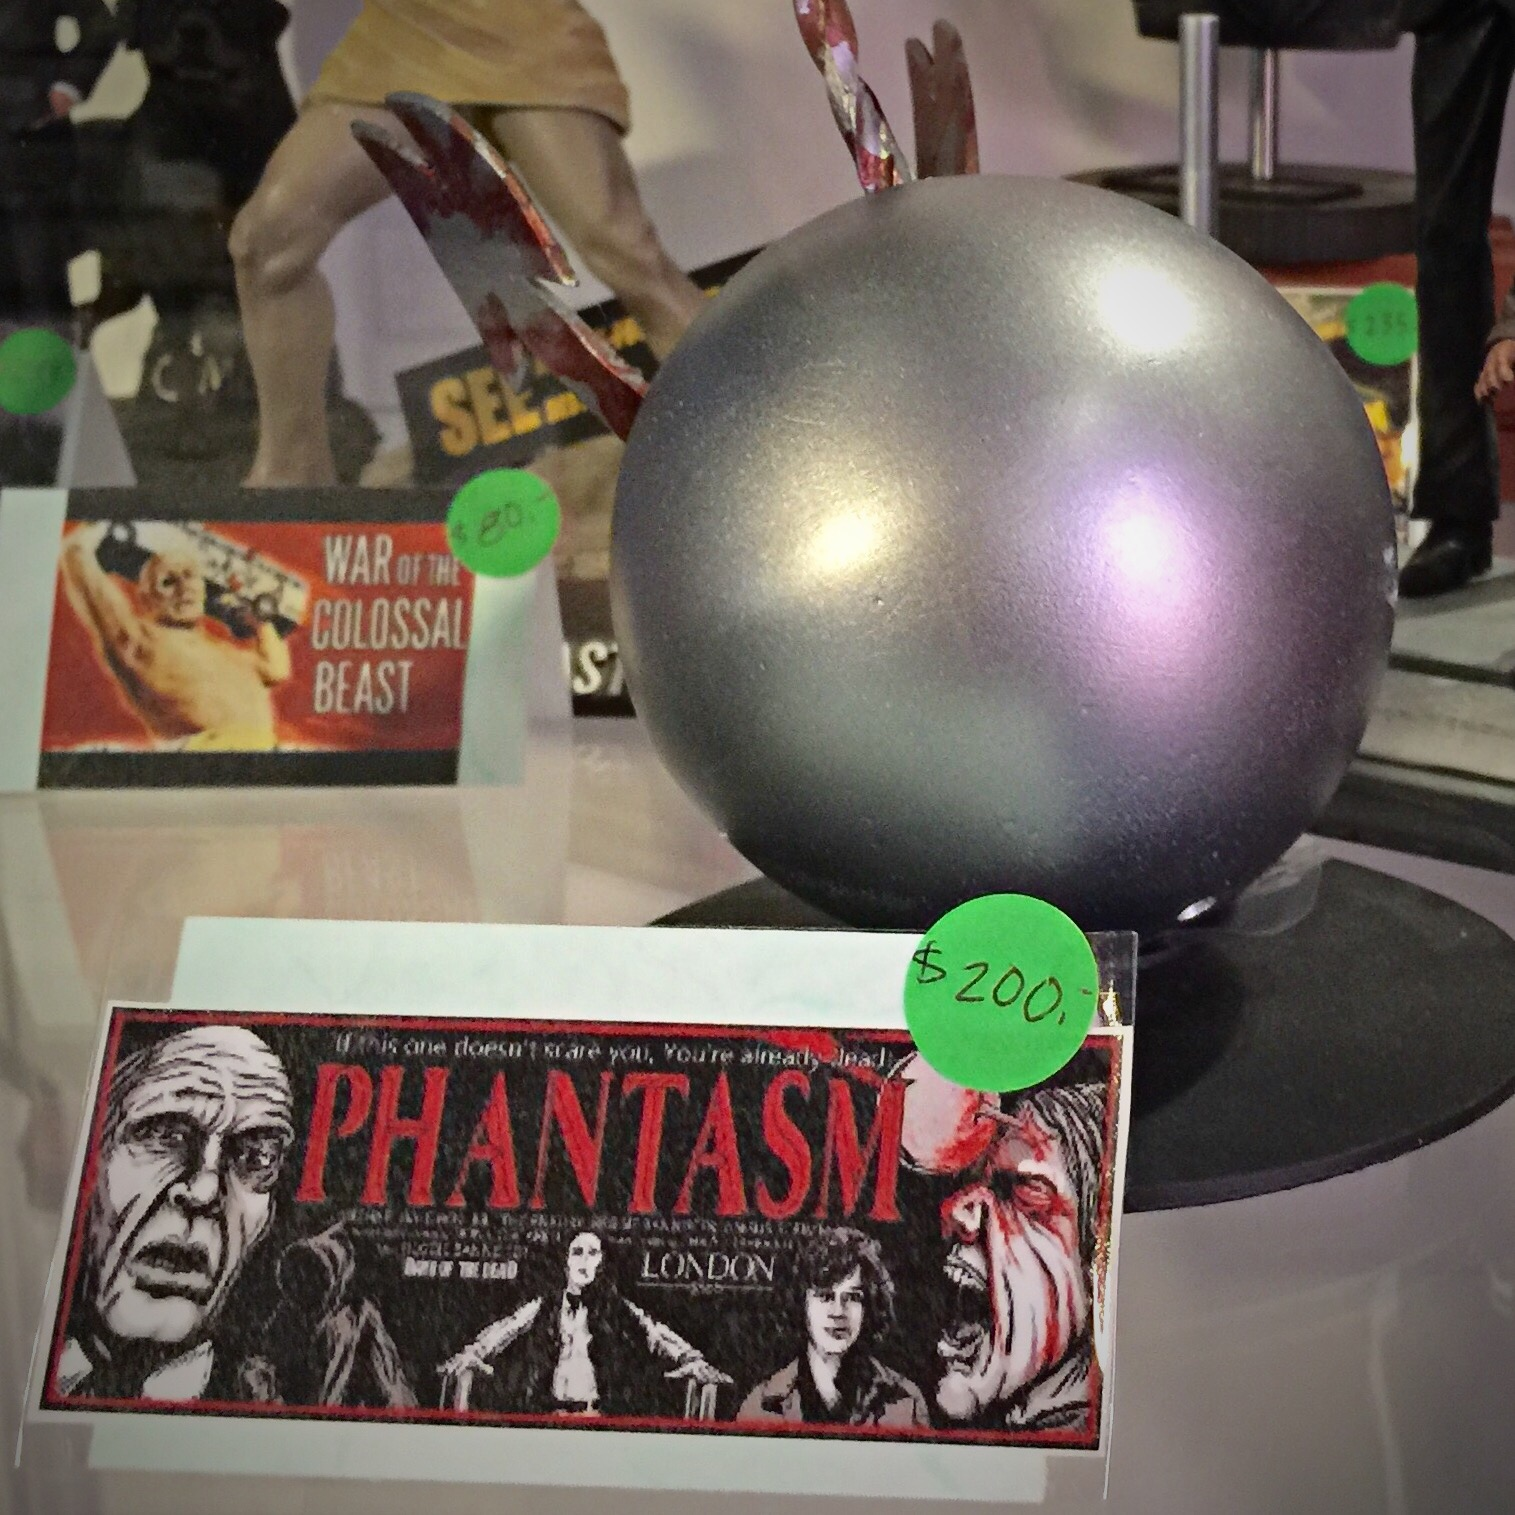 Hey, I love Phantasm as much as the next guy…